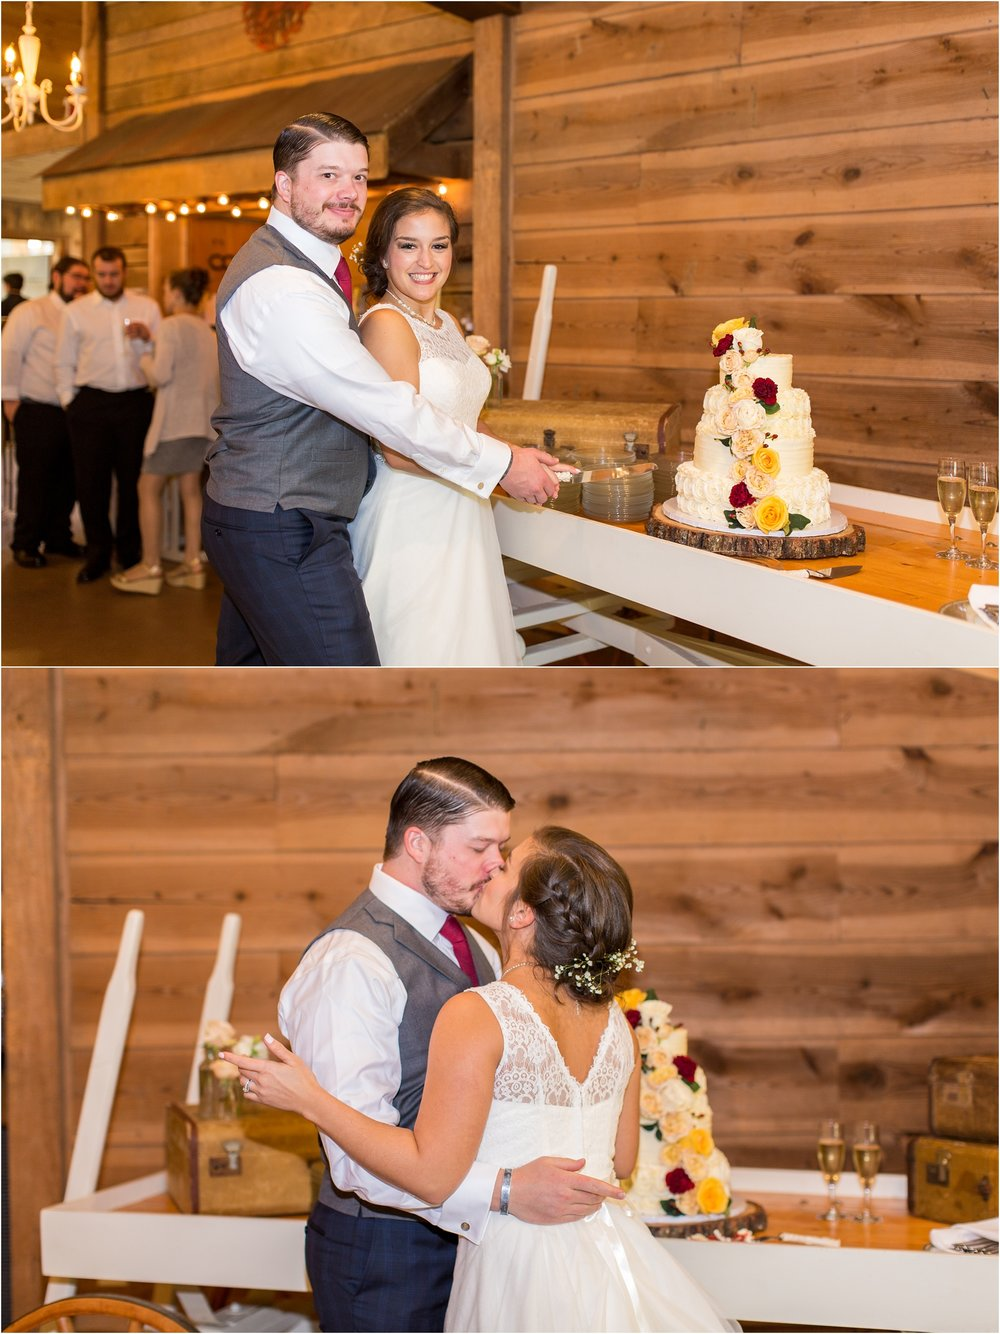 Savannah Eve Photography- McGeary-Epp Wedding- Sneak Peek-88.jpg